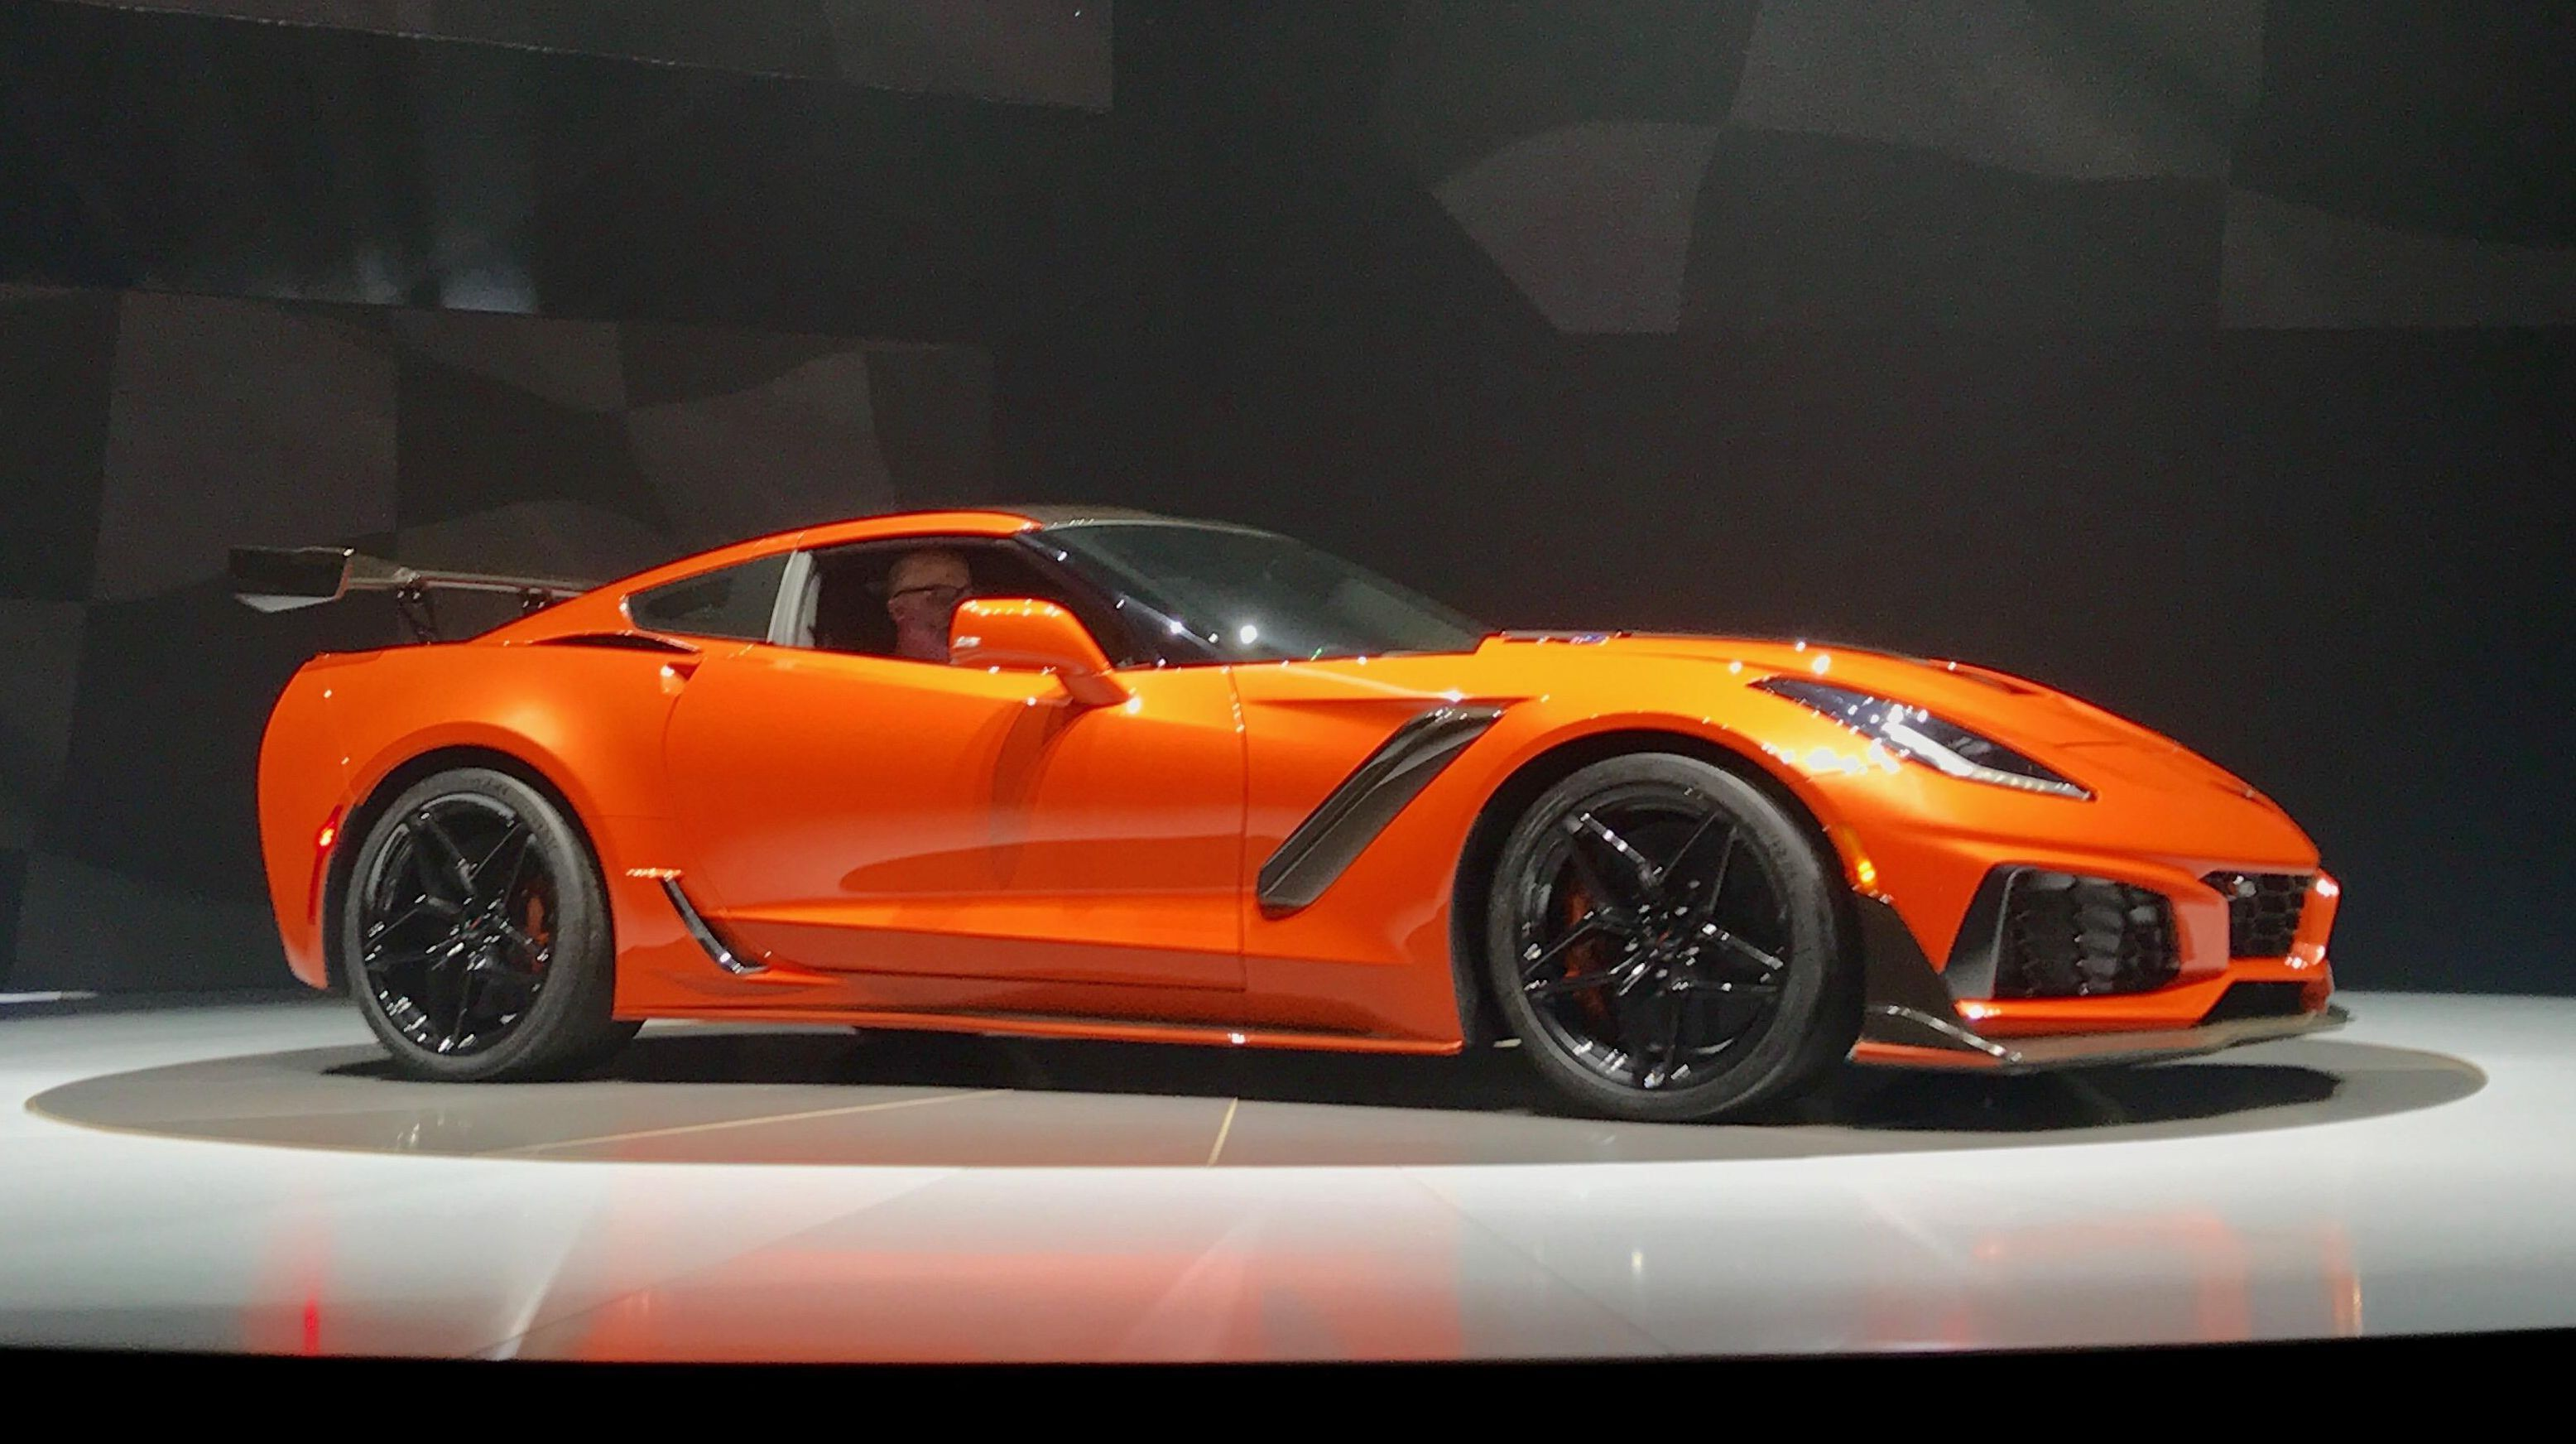 Being Far Away From America Dubai May Seem Like A Strange Place For Chevrolet To Launch Its 2019 Corve Chevy Corvette Chevrolet Corvette C7 Chevrolet Corvette